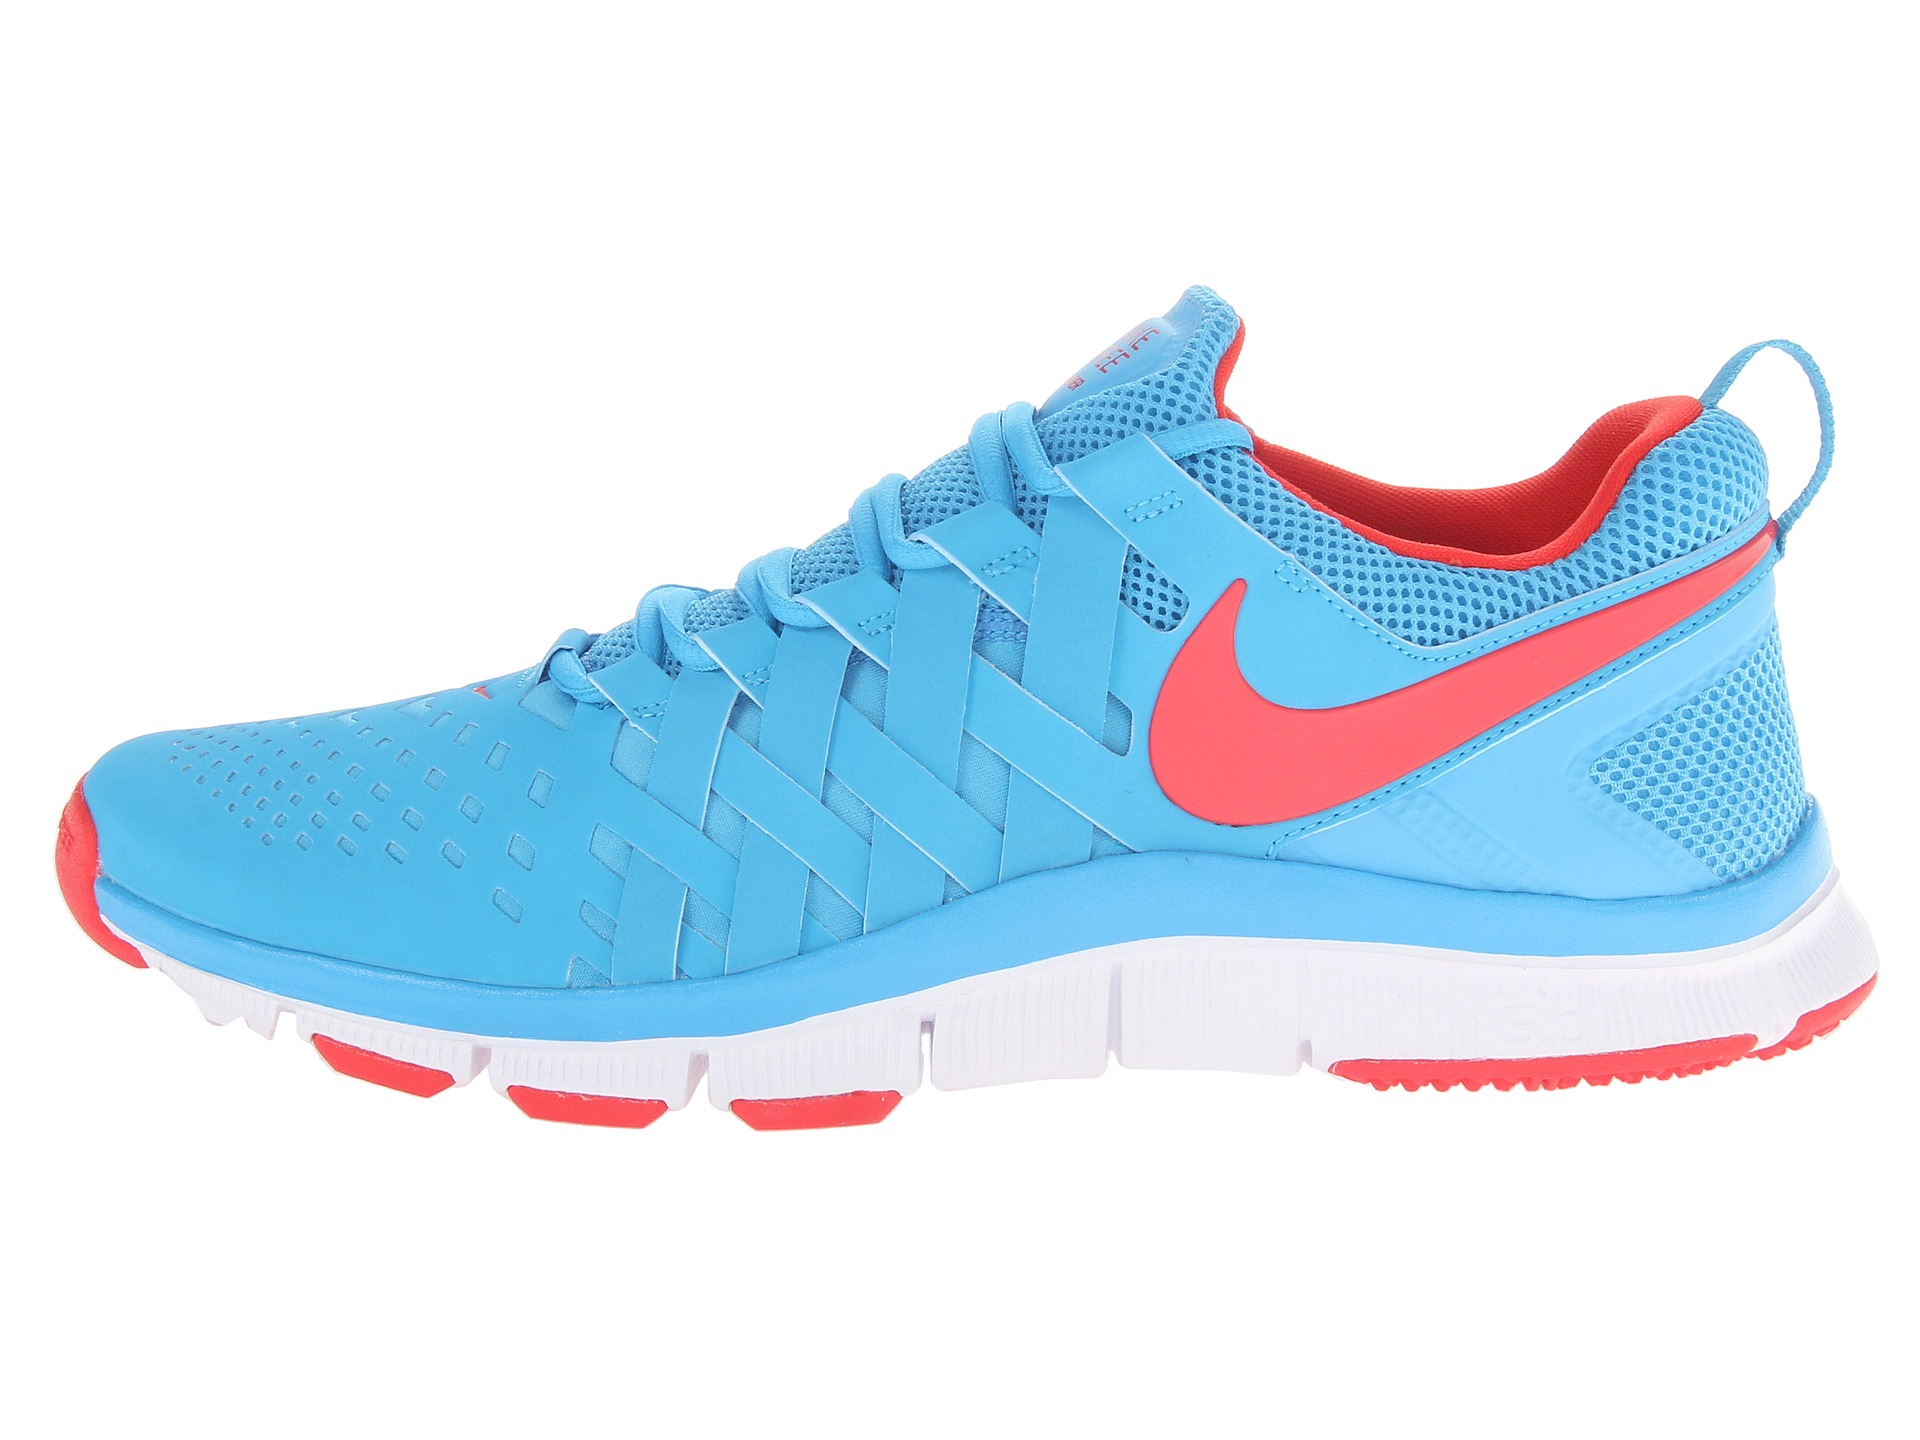 8f75e4d70a6 Zappos Nike Free Trainer 5.0